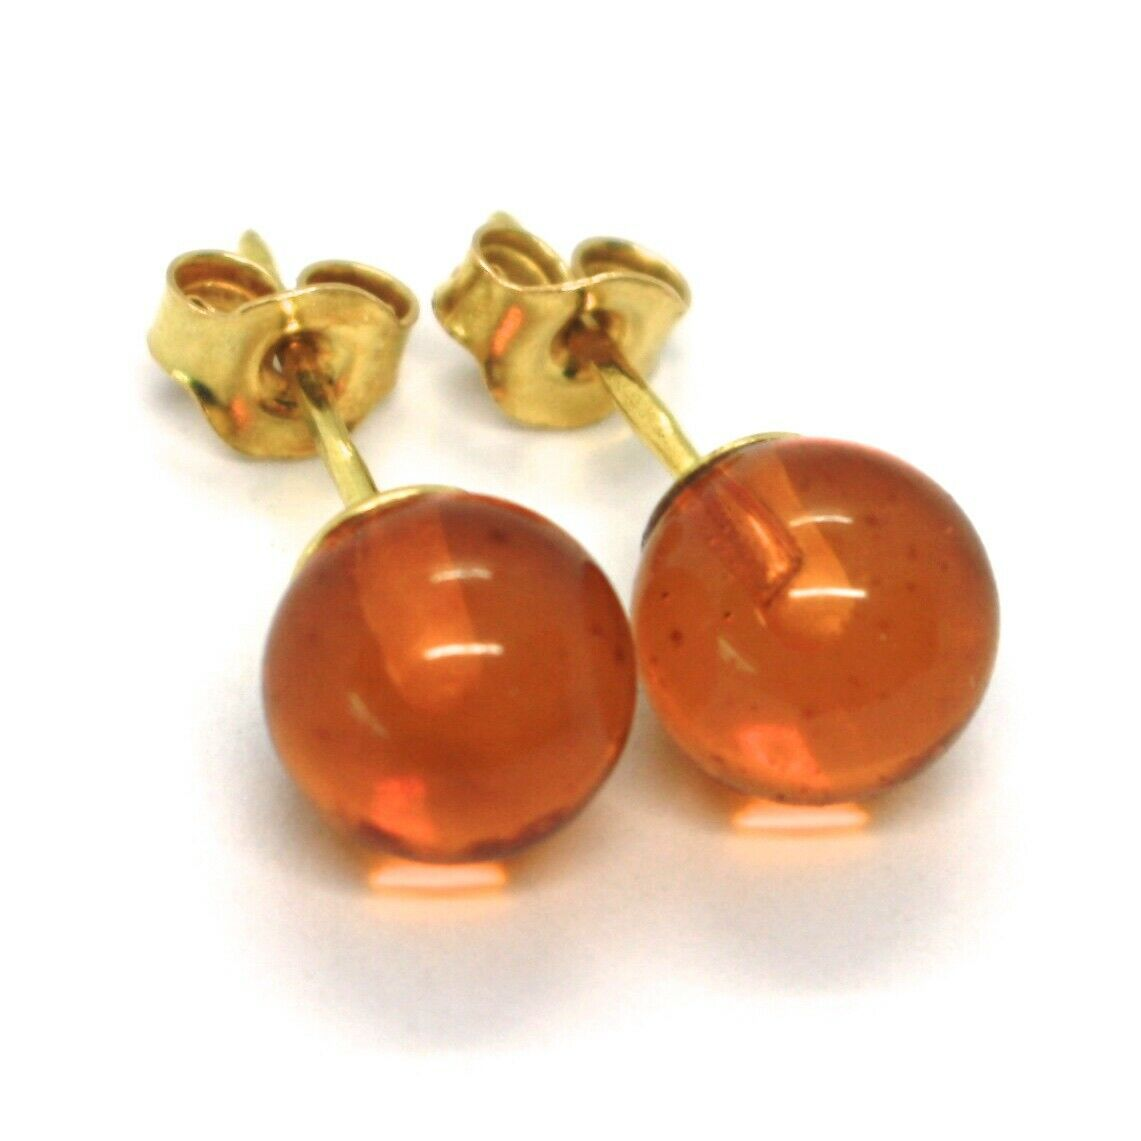 Yellow Gold Earrings, 18K 750, Lobe, Thin, Spheres Amber, Diameter 8mm